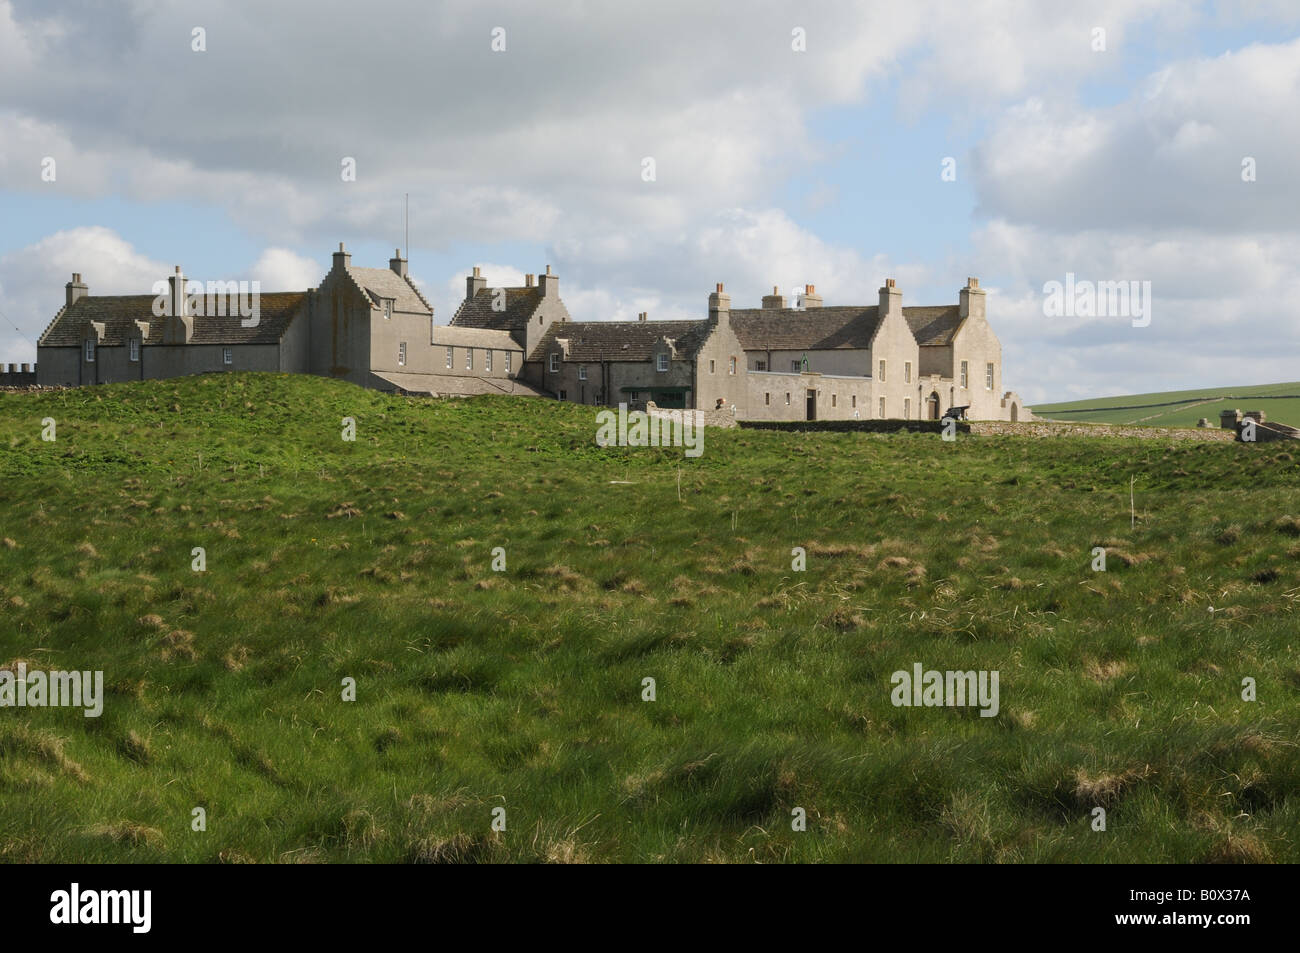 Skaill House on mainland Orkney facing the Bay of Skaill was built in stages beginning in 1620. Stock Photo